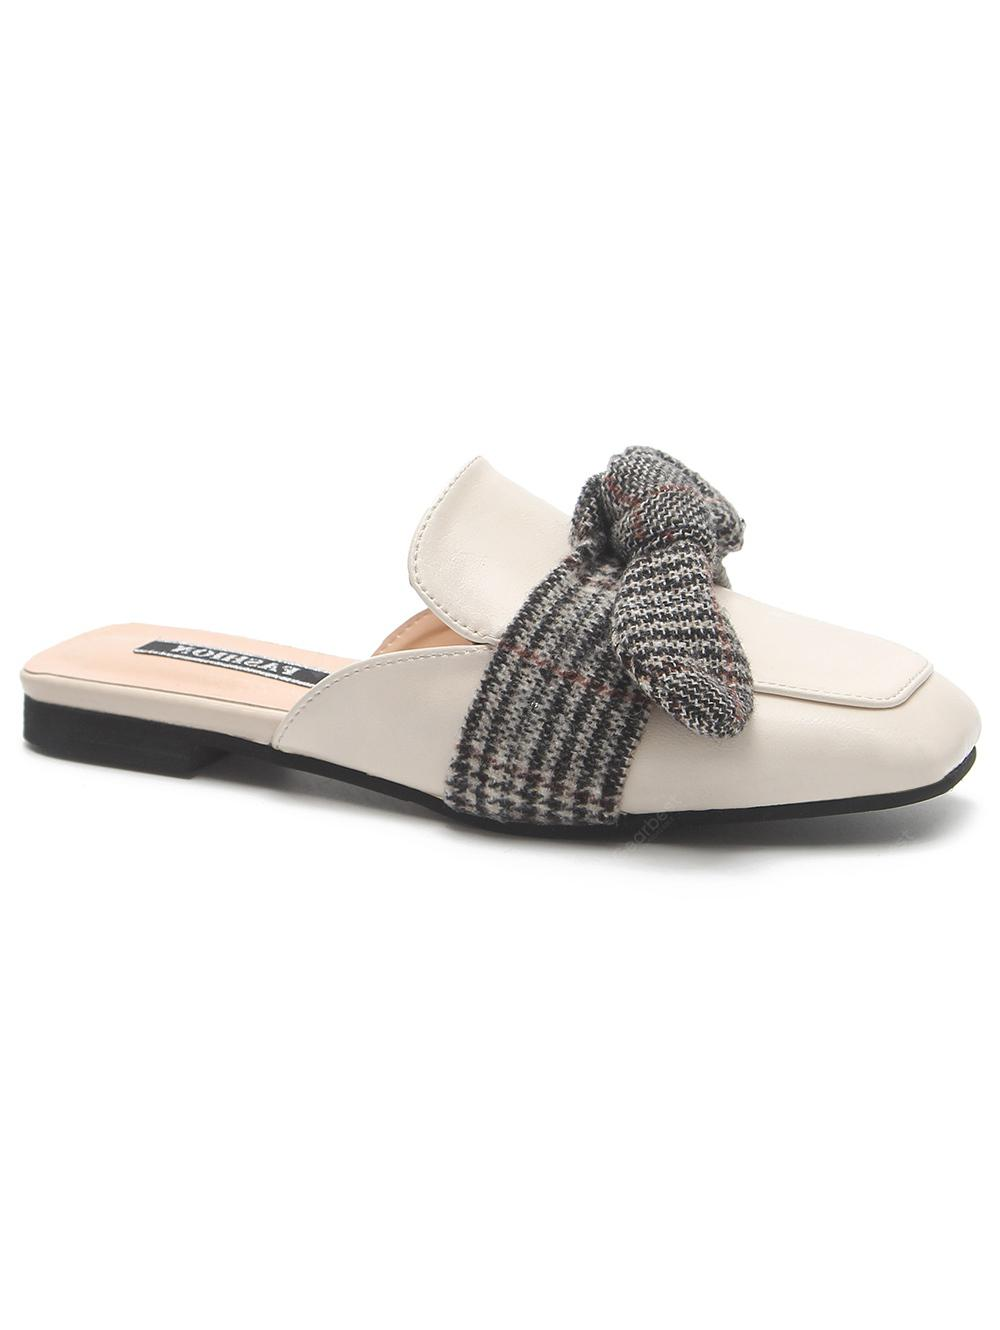 2015 new cheap price really cheap PU Leather Square Toe Bowknot Mules Shoes clearance best clearance online ebay cheap sale real 2bKmG4i